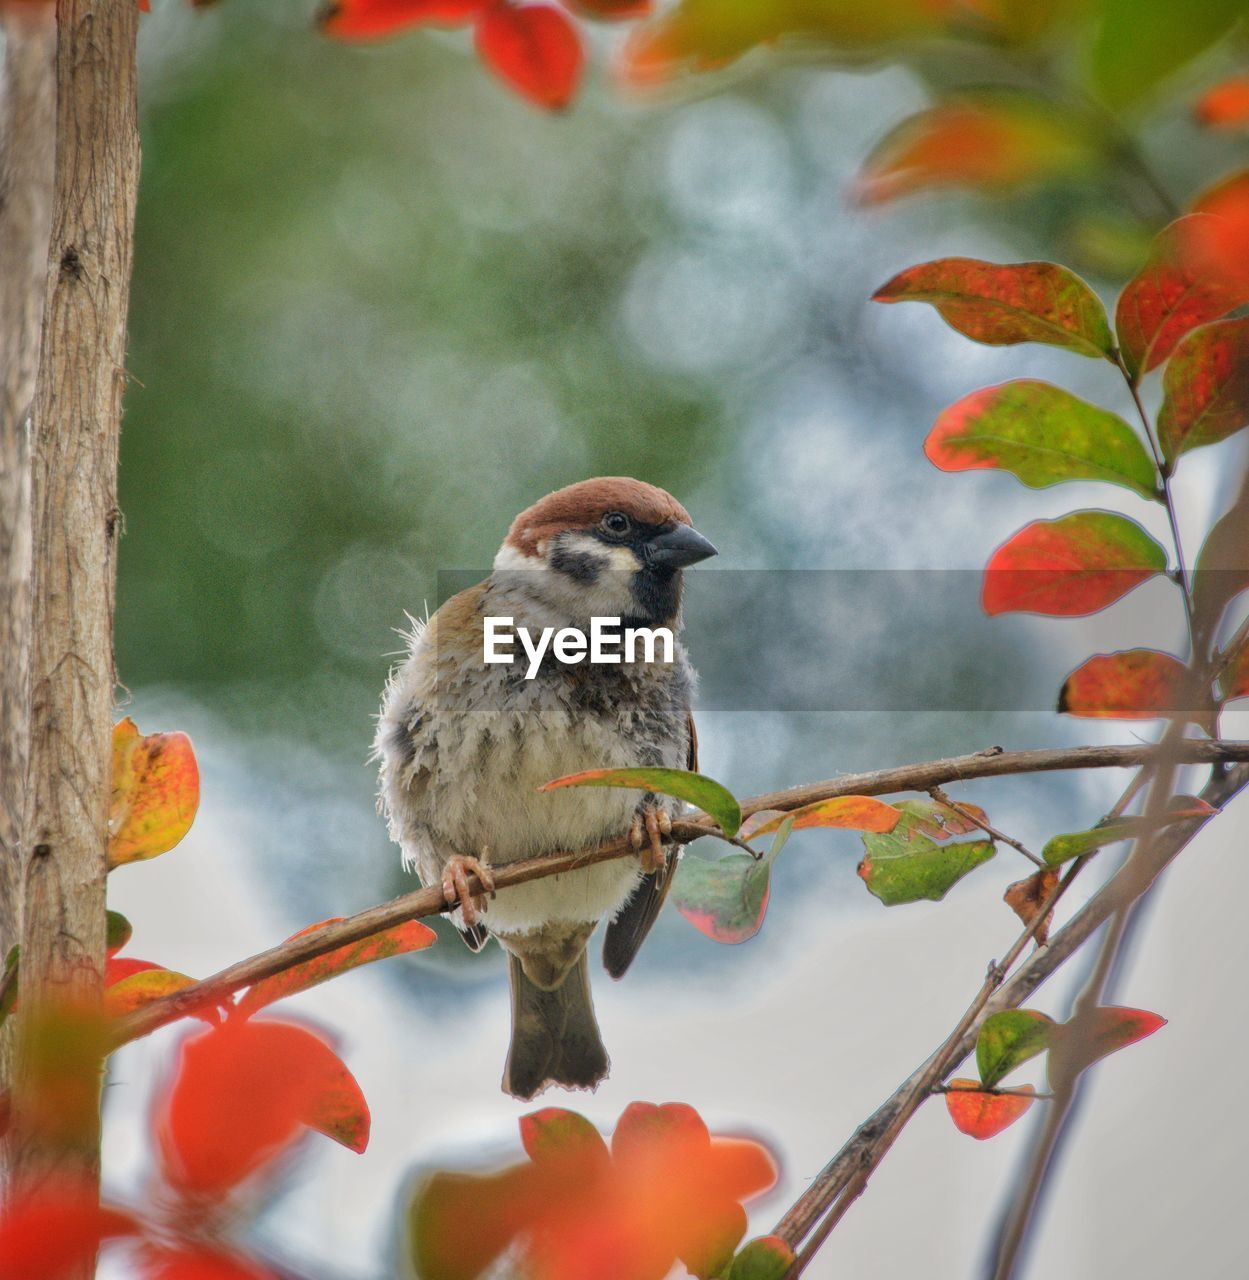 vertebrate, animal themes, bird, animal, animal wildlife, animals in the wild, one animal, plant, perching, branch, tree, plant part, leaf, nature, day, no people, focus on foreground, close-up, outdoors, beauty in nature